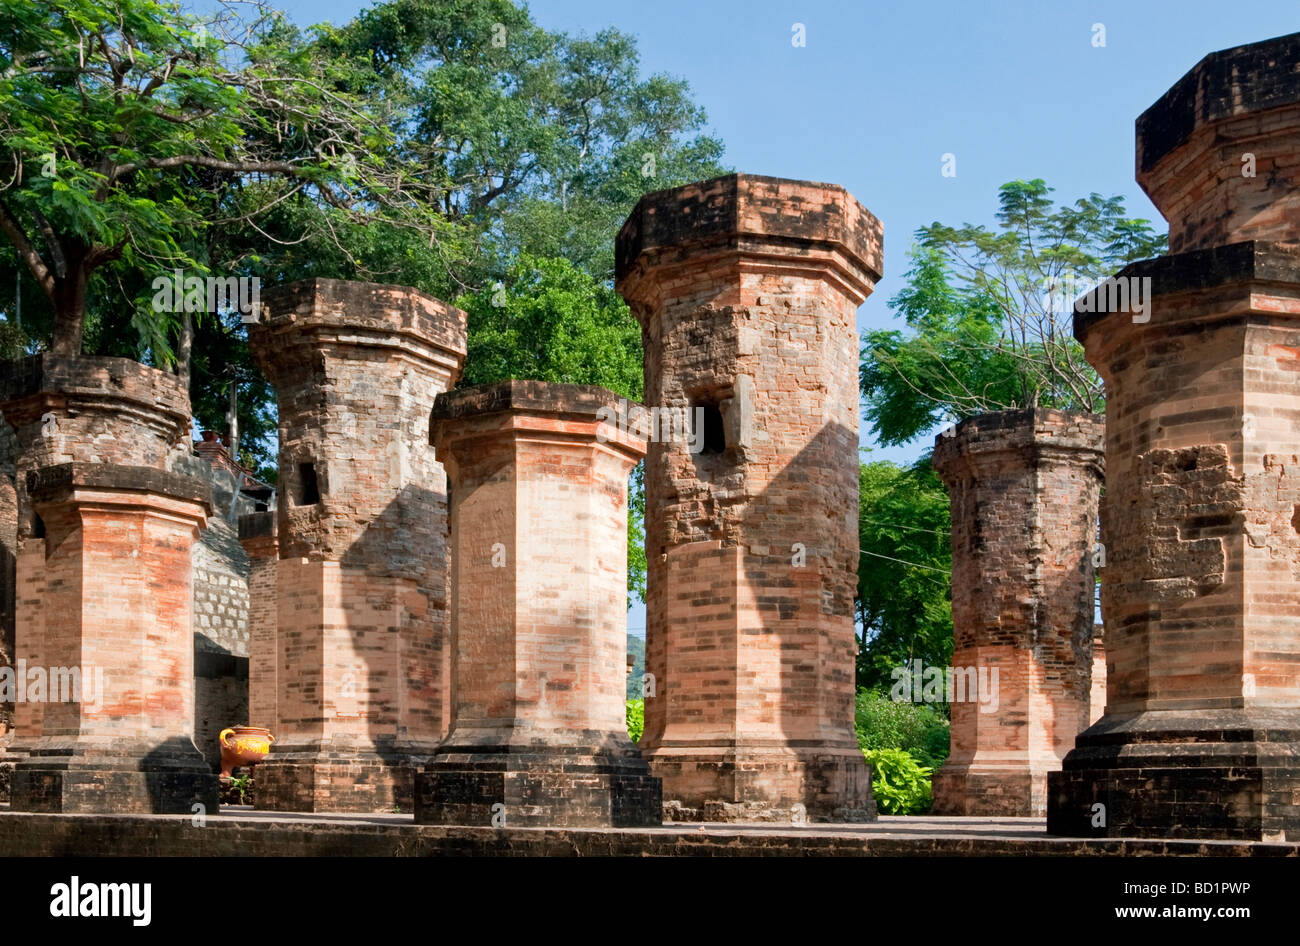 Ten pillars originally supporting roof of a mandala, Po Nagar Cham Towers or 'Thap Ba' (Lady of the City), - Stock Image